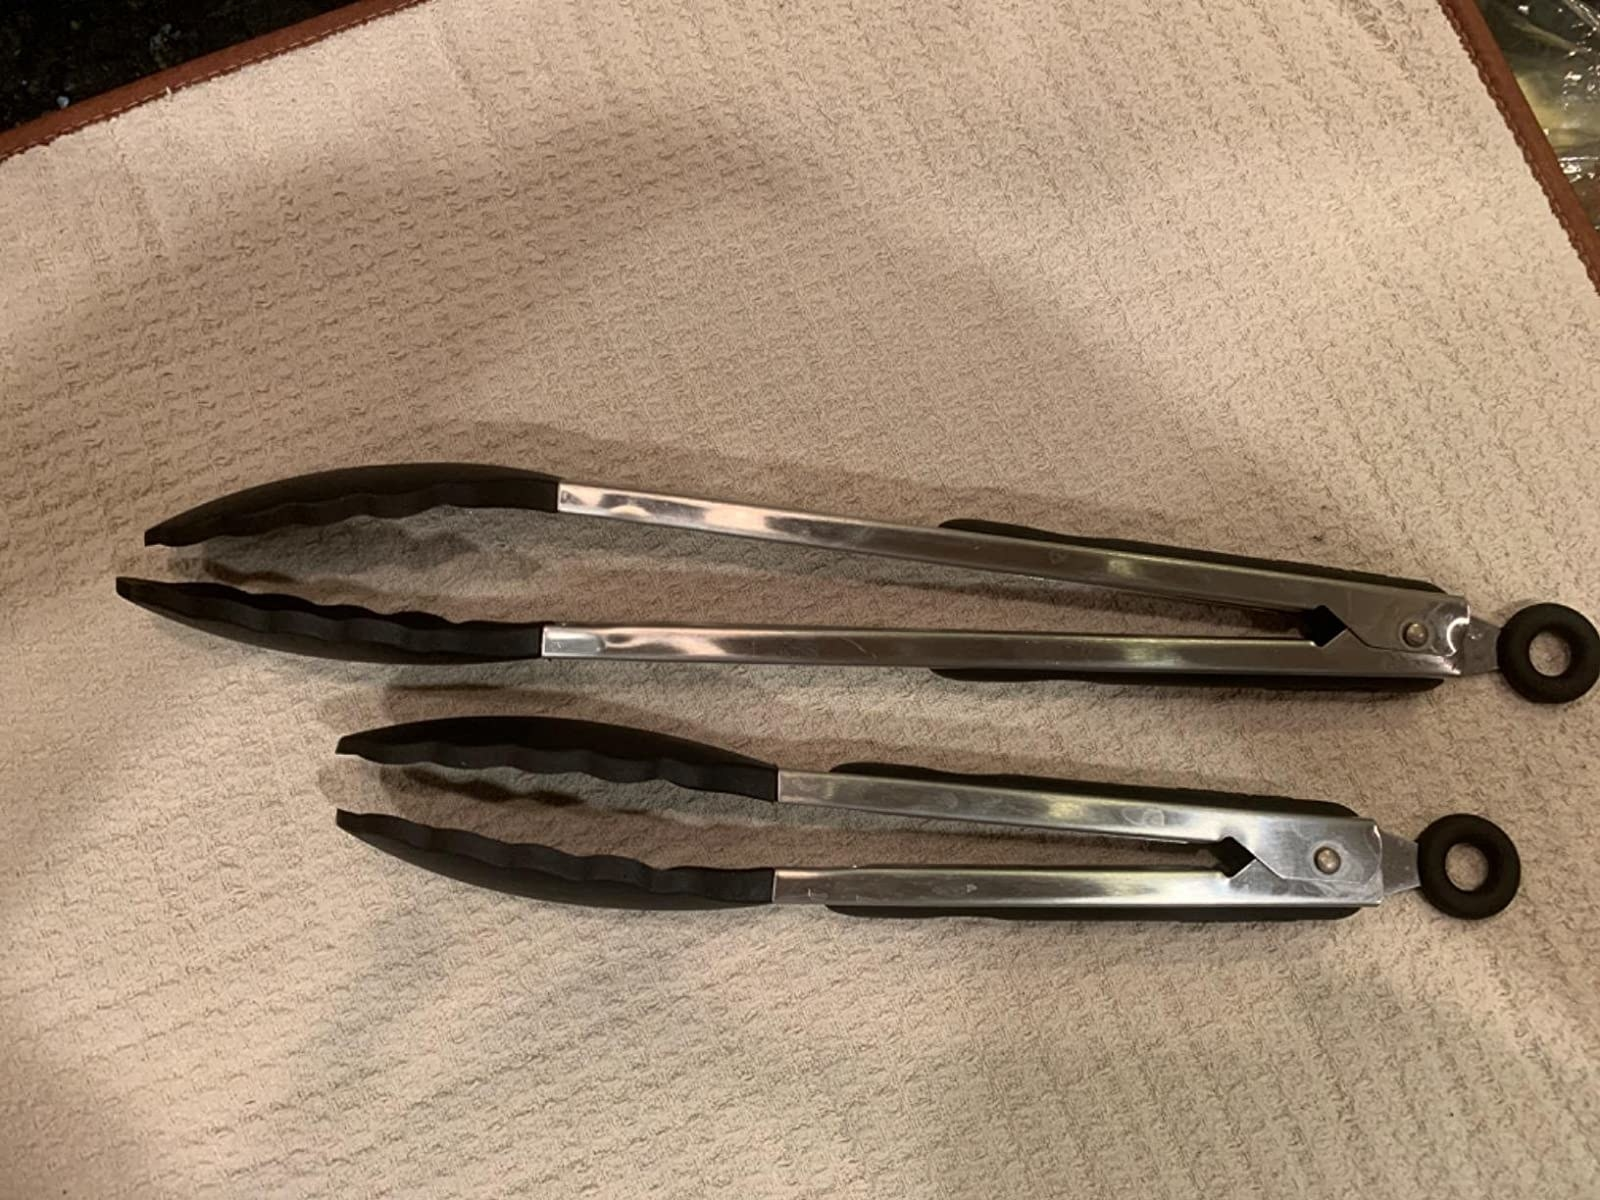 Reviewer image of tongs laying side by side